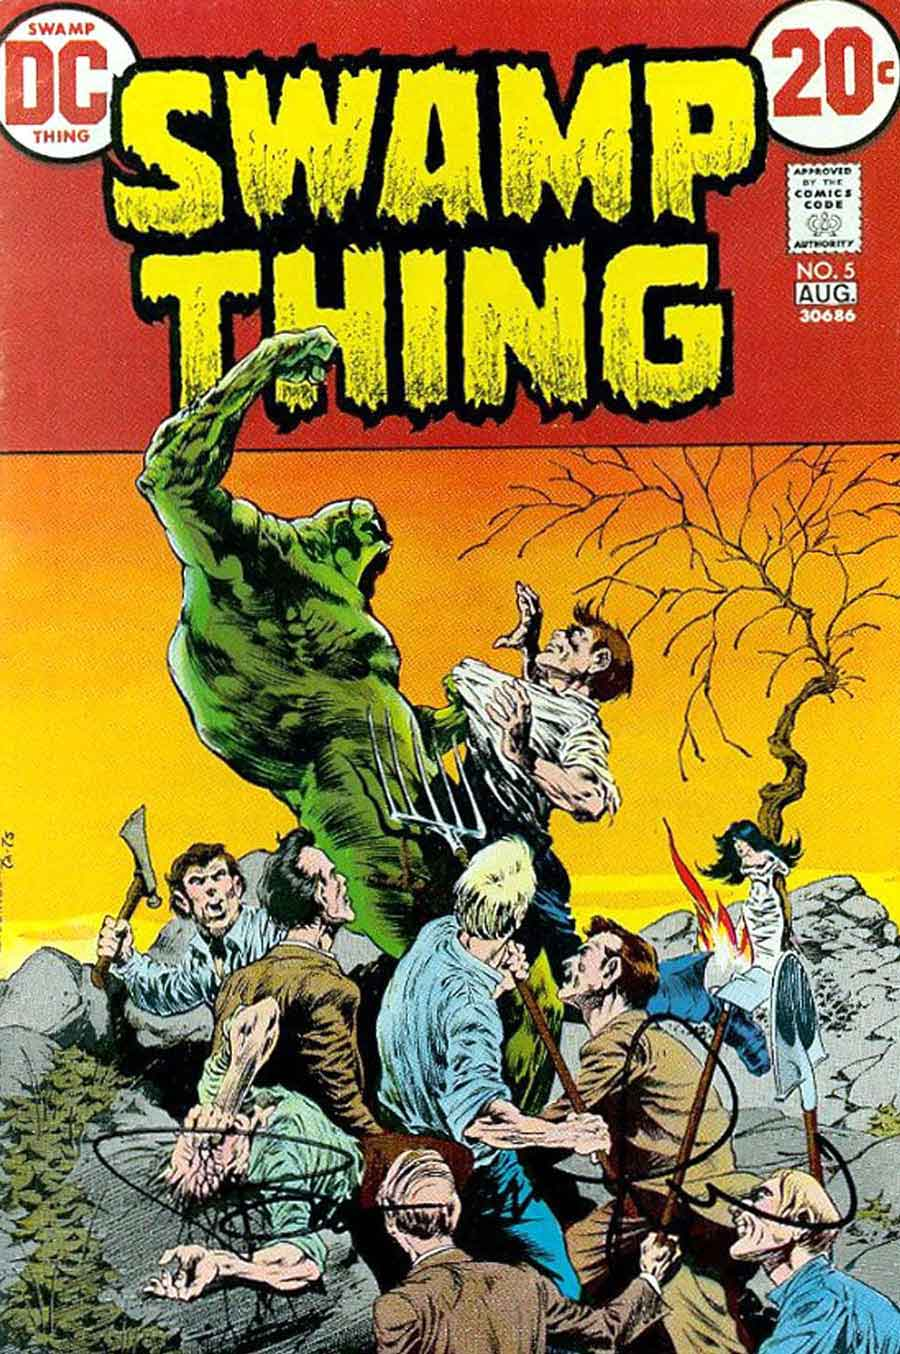 Swamp Thing v1 #5 1970s bronze age dc comic book cover art by Bernie Wrightson